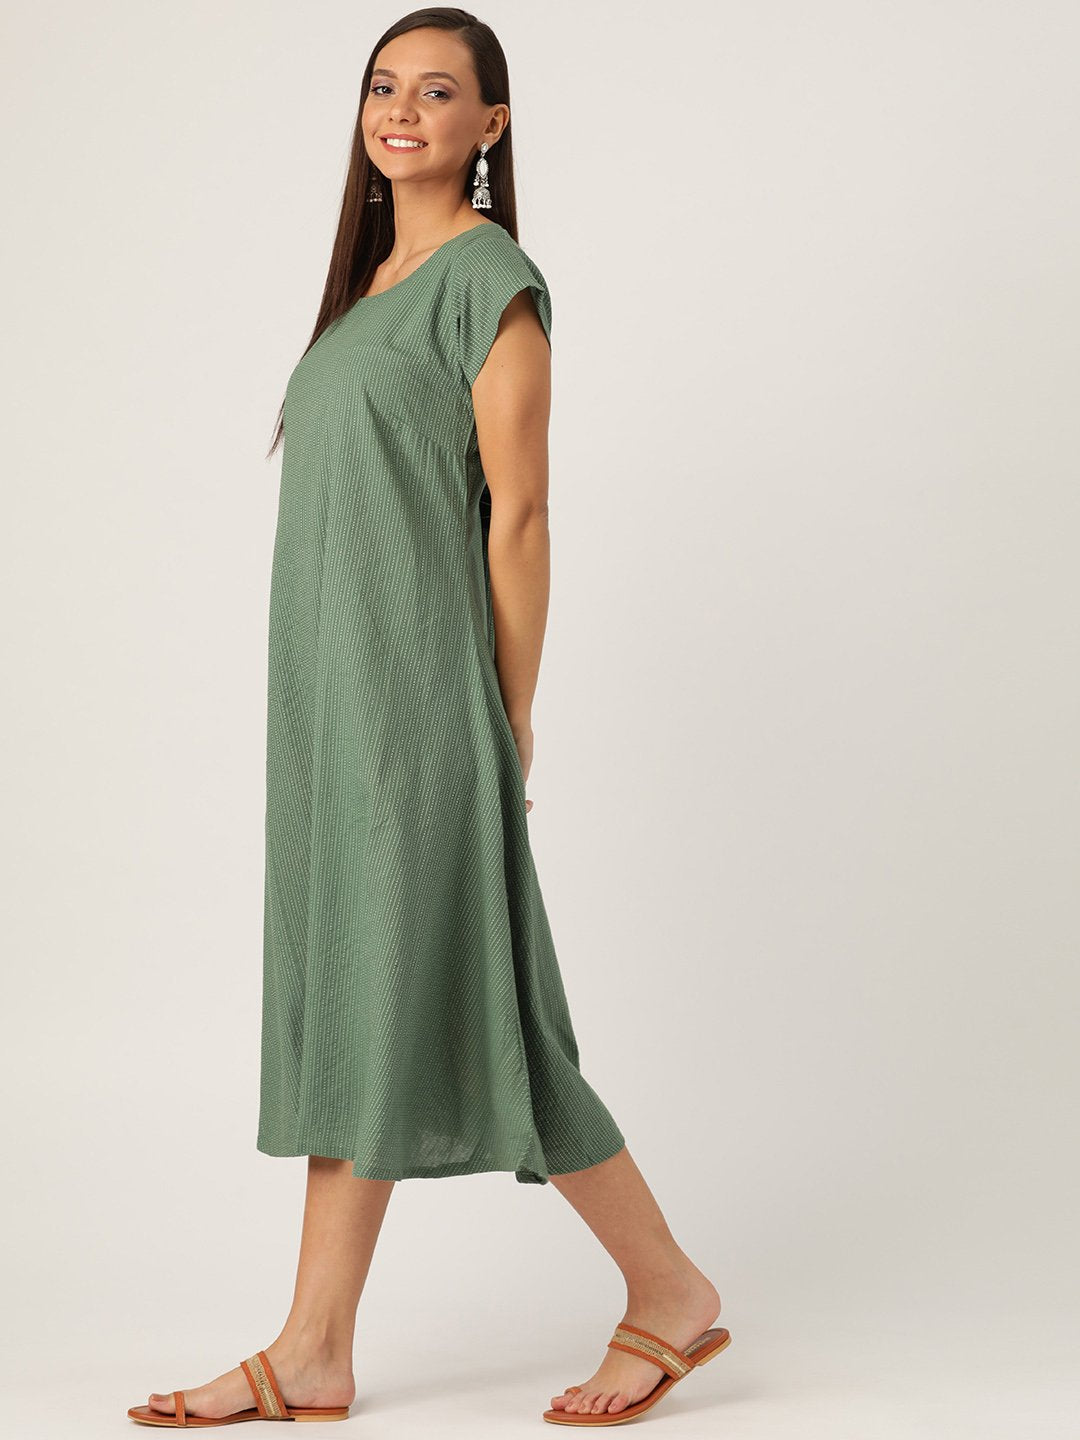 Dark Green Kantha A Line Dress